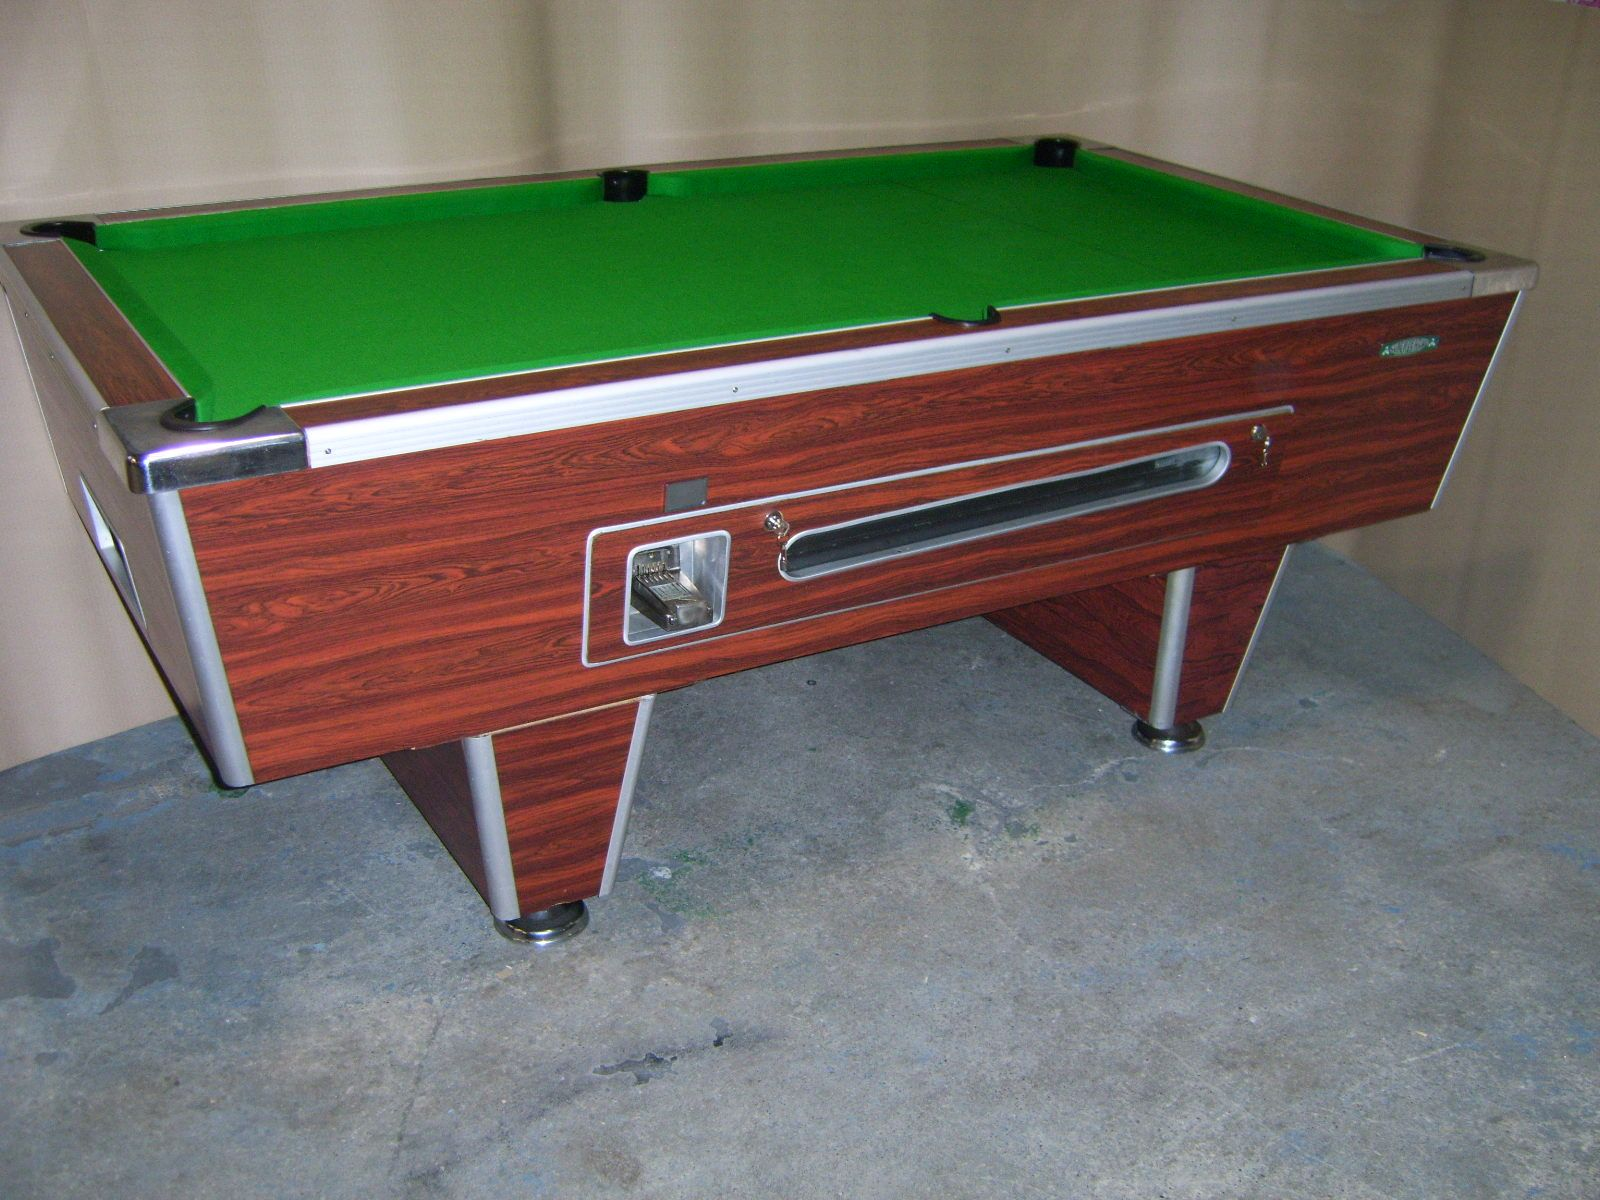 SuperLeague 7×4 Slate Bed Pub Pool Table